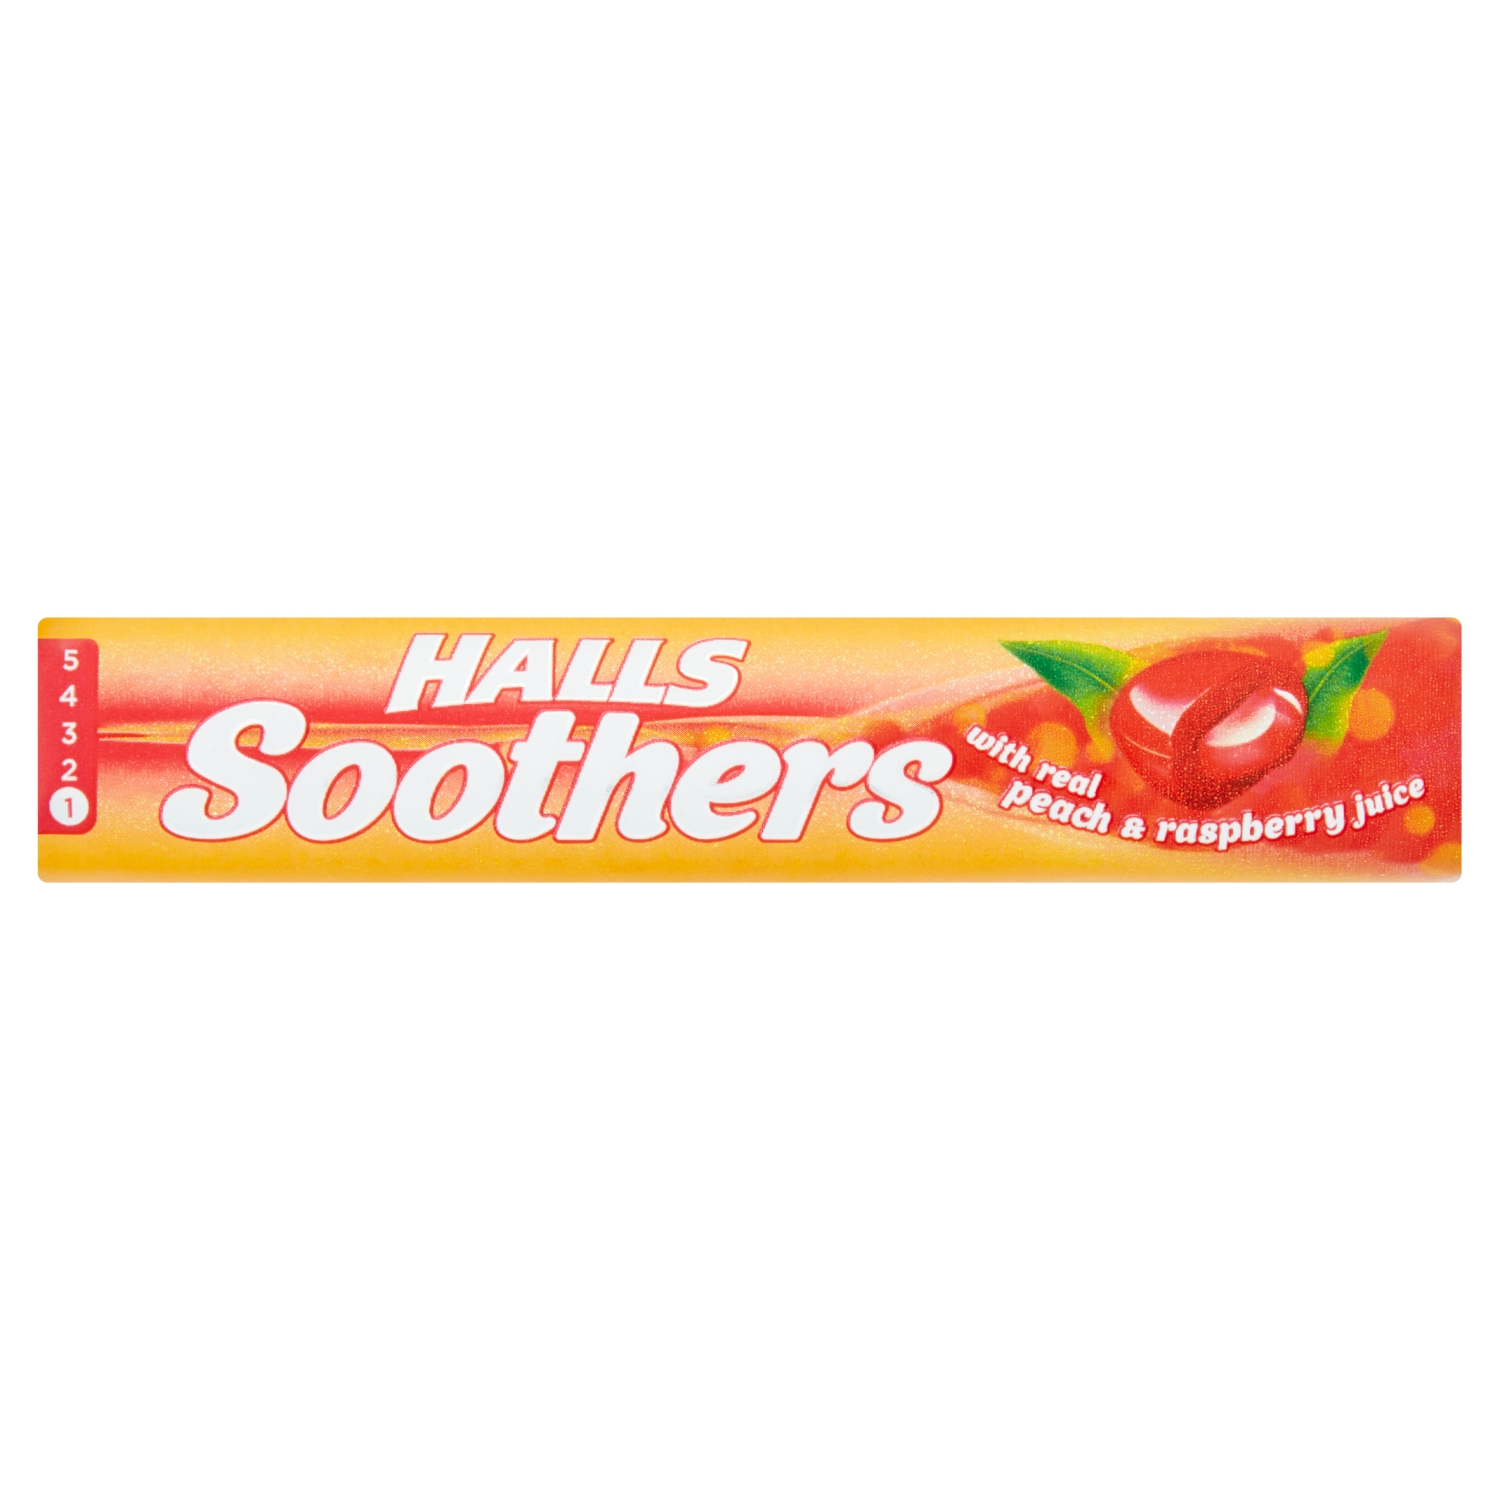 Halls Soothers Real Peach & Raspberry Juice Sweets 45g